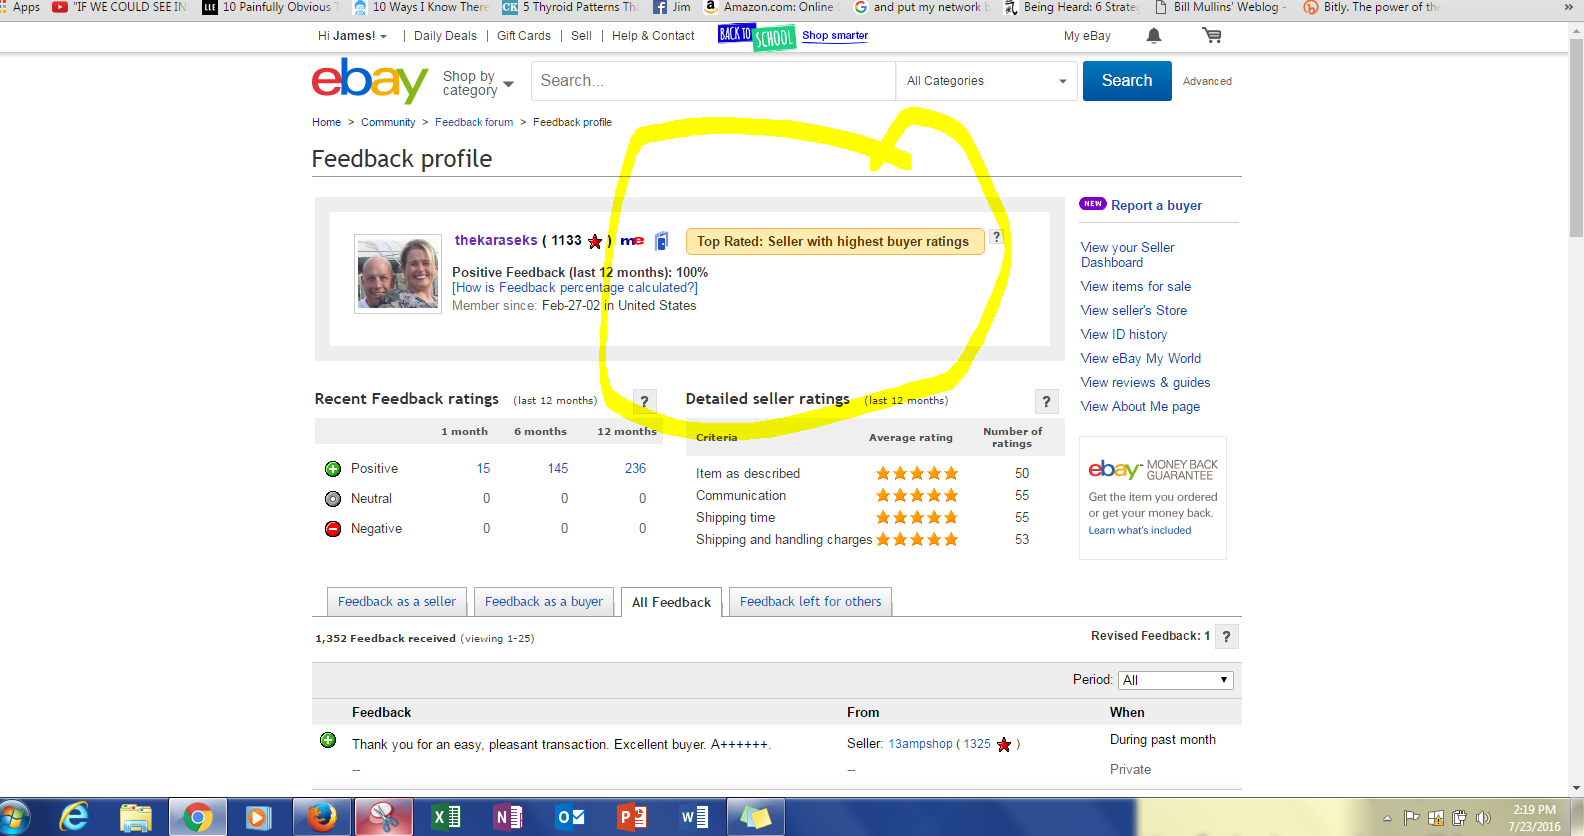 Why Is Top Rated Seller Designation Not Showing On The Ebay Community